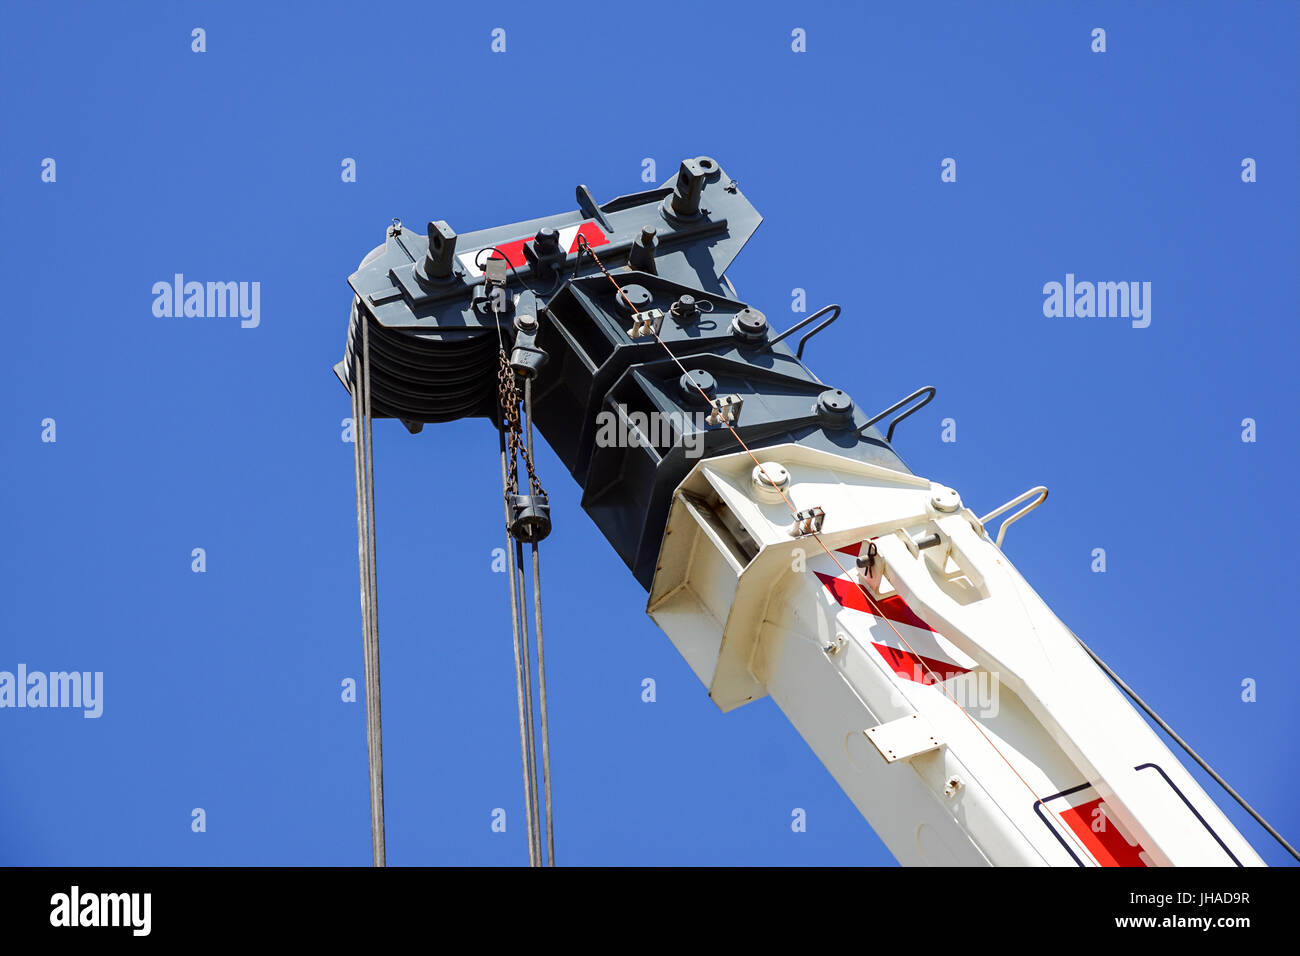 truck crane detail boom with hooks and scale weight above blue sky Stock Photo